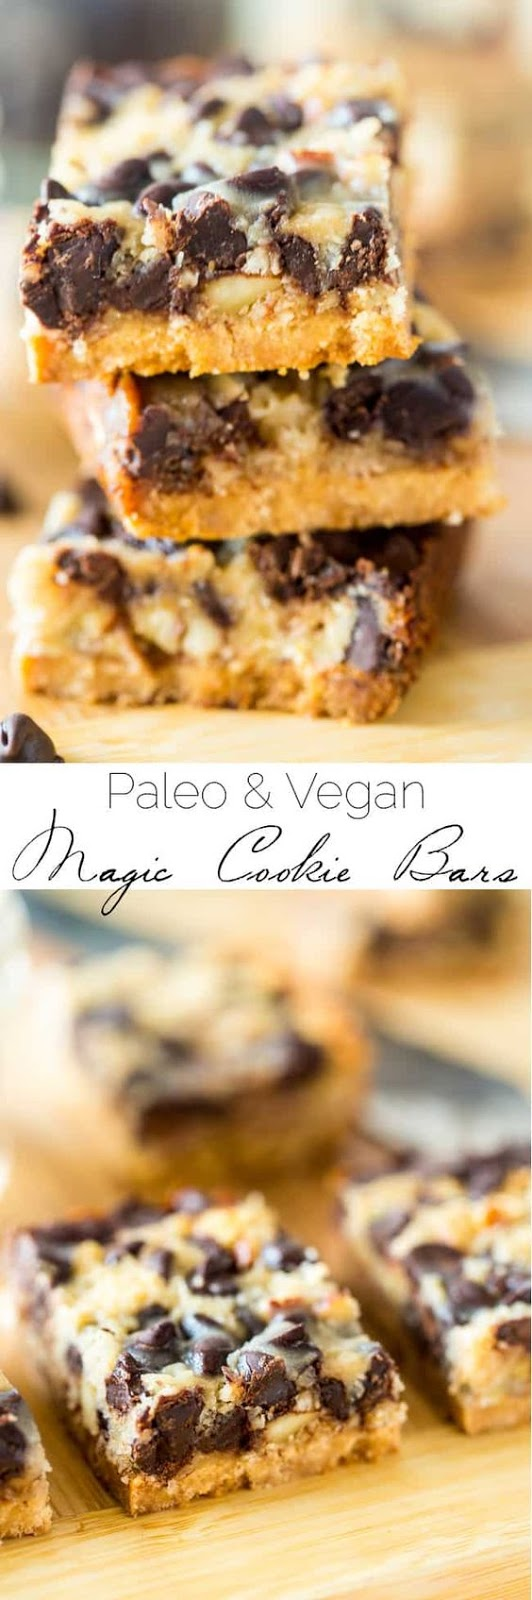 Vegan and Paleo Magic Cookie Bars - These magic cookie bars are a healthier remake of the classic dessert! You'll never know they're gluten, grain, dairy and refined sugar free! | #Foodfaithfitness | #Paleo #vegan #healthy #glutenfree #dessert